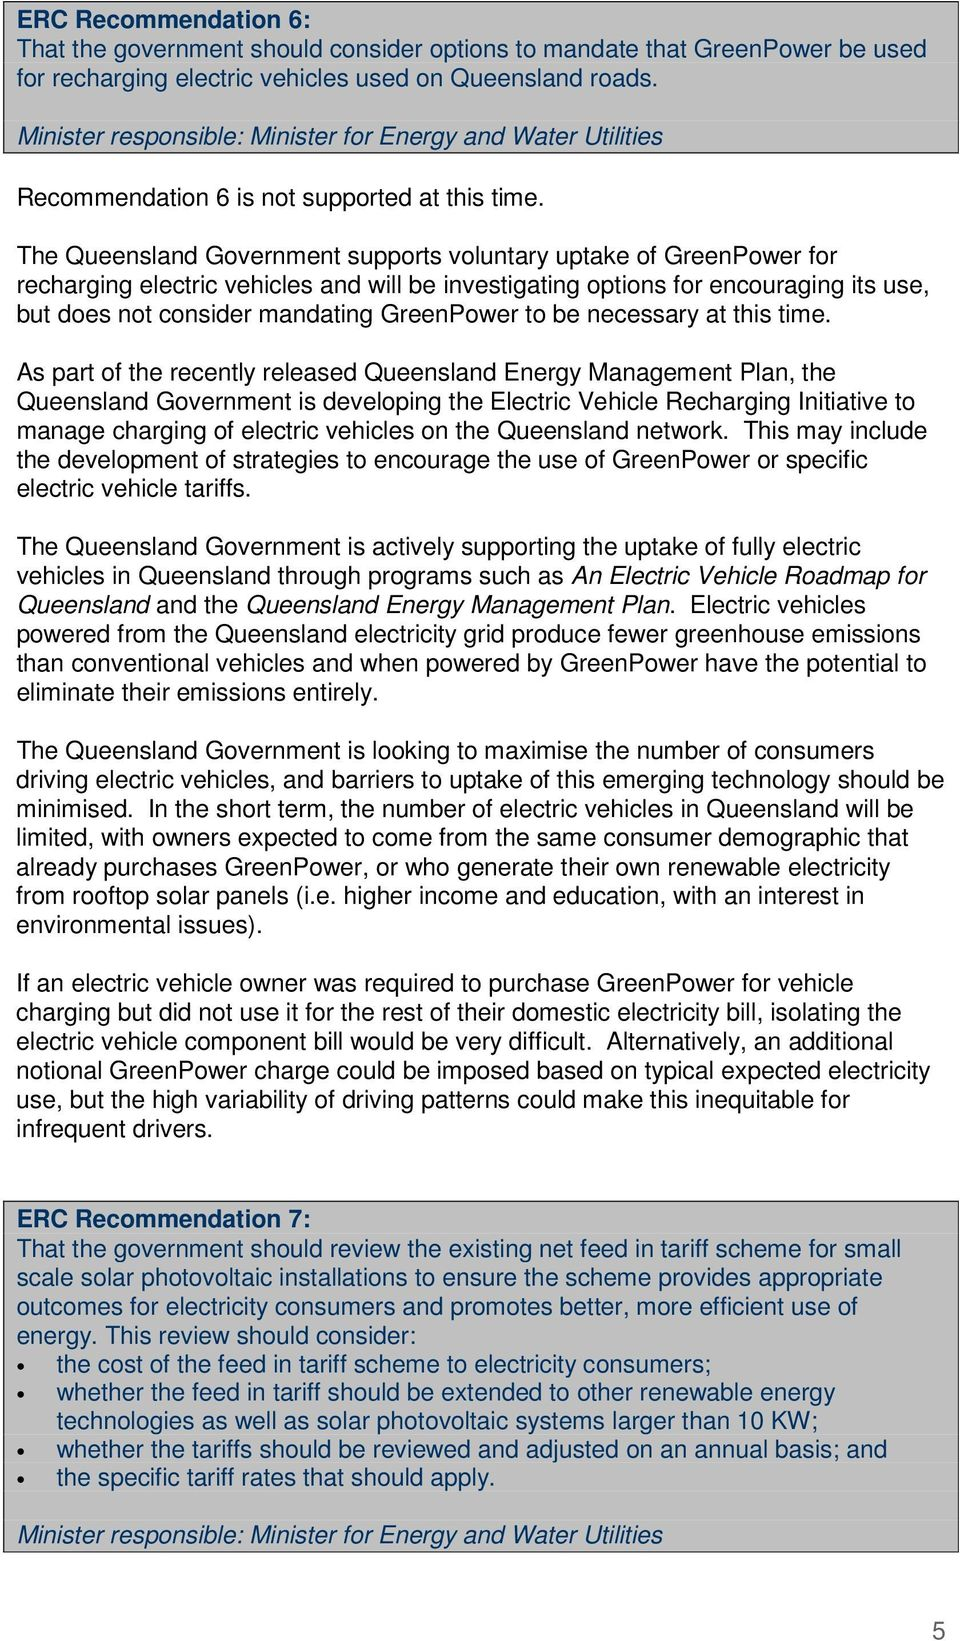 The Queensland Government supports voluntary uptake of GreenPower for recharging electric vehicles and will be investigating options for encouraging its use, but does not consider mandating